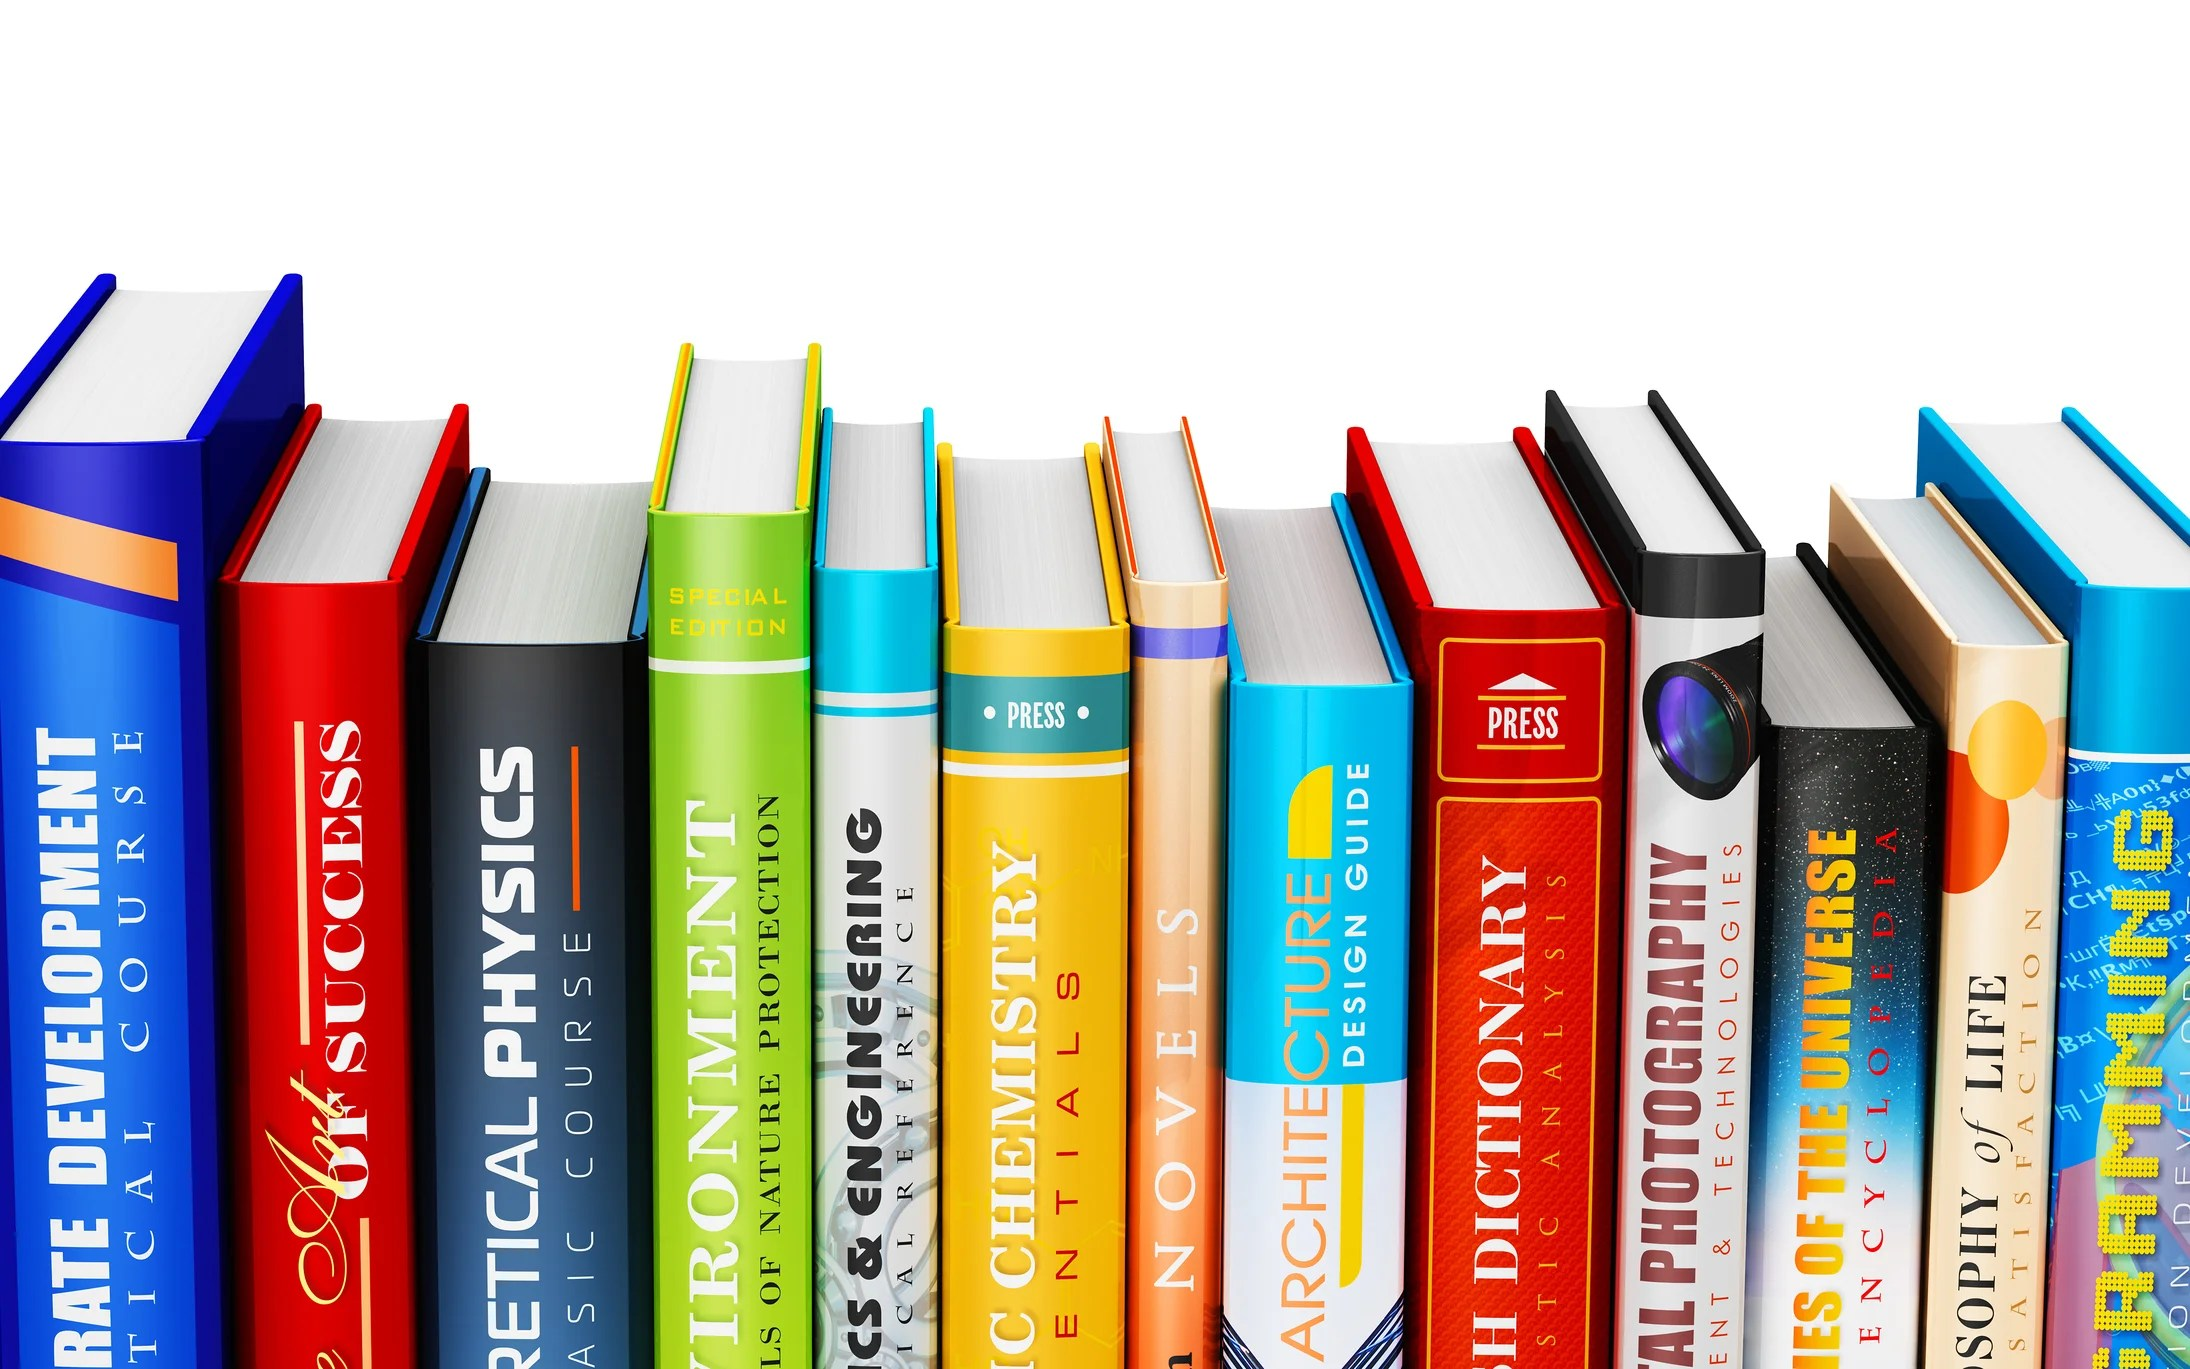 Why Houghton Mifflin Harcourt Company Stock Just Popped 14